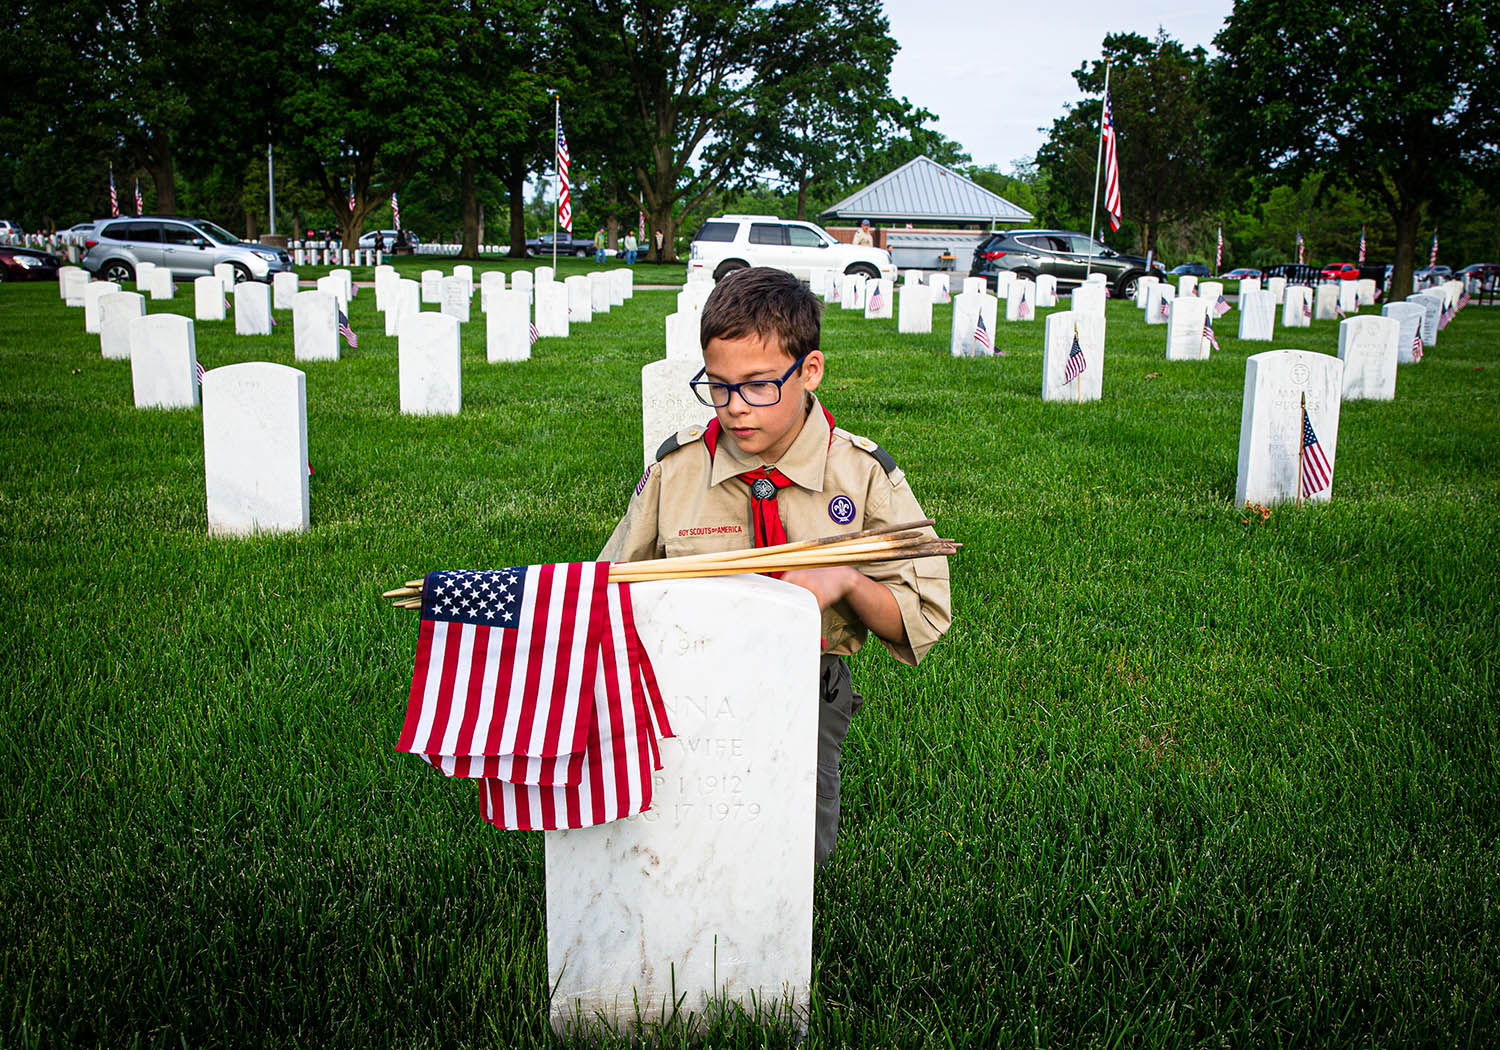 Ethan Perry, of New Berlin, Ill., with Boy Scout Troop 13, pauses at a gravestone to place an American Flag in honor of veterans for Memorial Day at Camp Butler National Cemetery, Saturday, May 25, 2019, near Riverton, Ill. The Boy Scouts join with veterans and volunteers in the annual tradition of placing an American Flag at every gravestone in the cemetery. [Justin L. Fowler/The State Journal-Register]